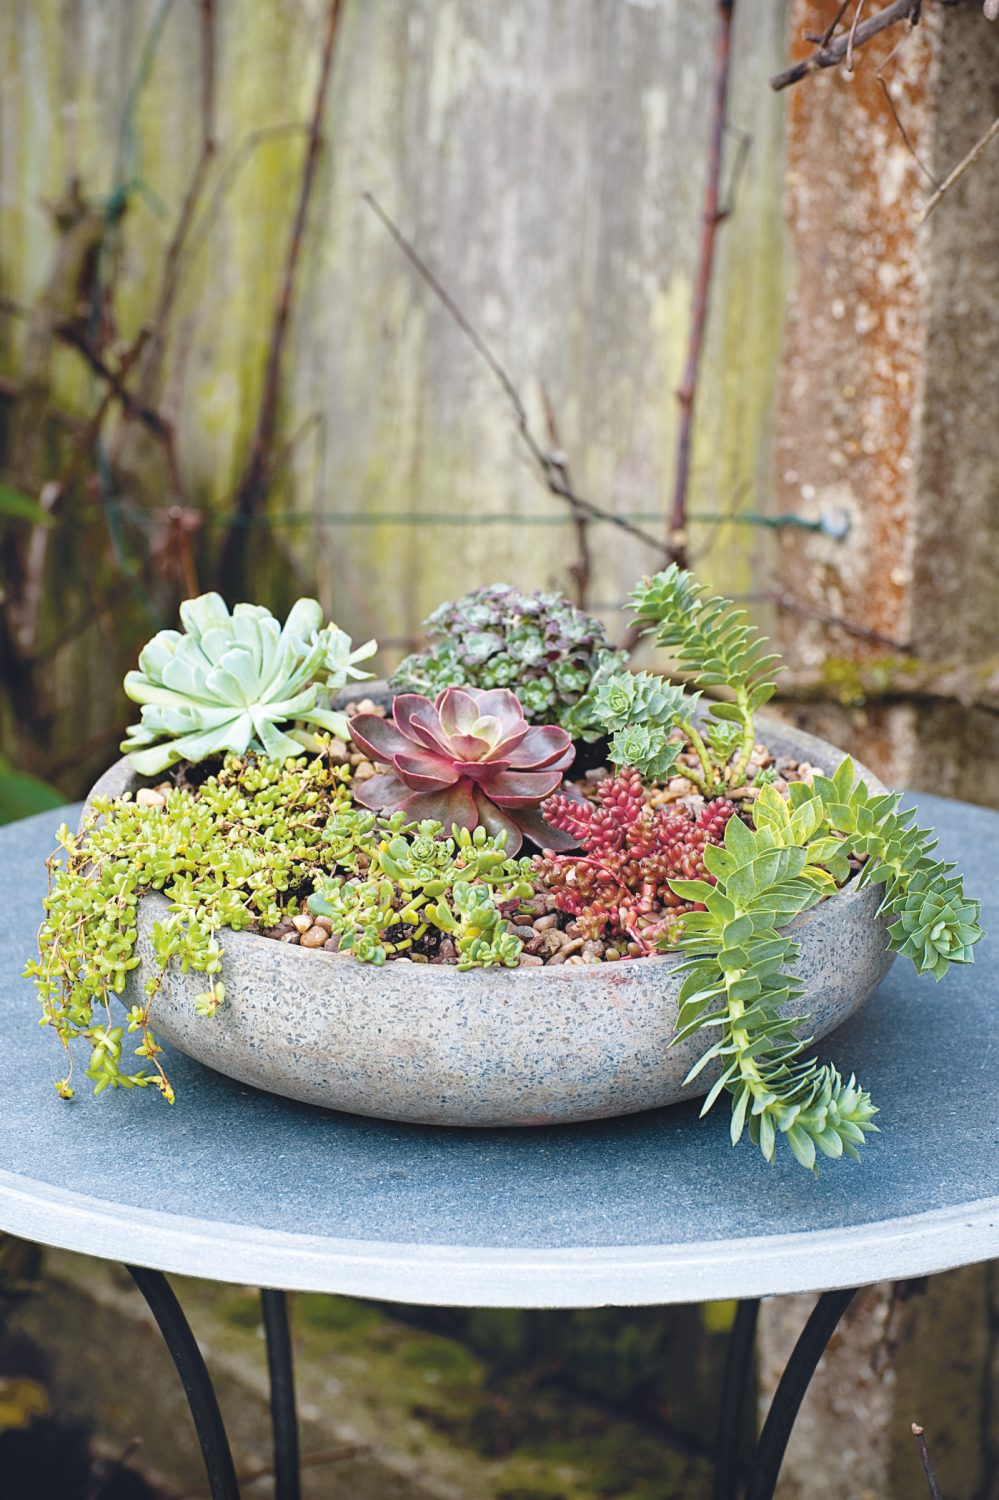 These low-lying succulents in a variety of colours in a shallow concrete planter make a wonderful miniature winter garden